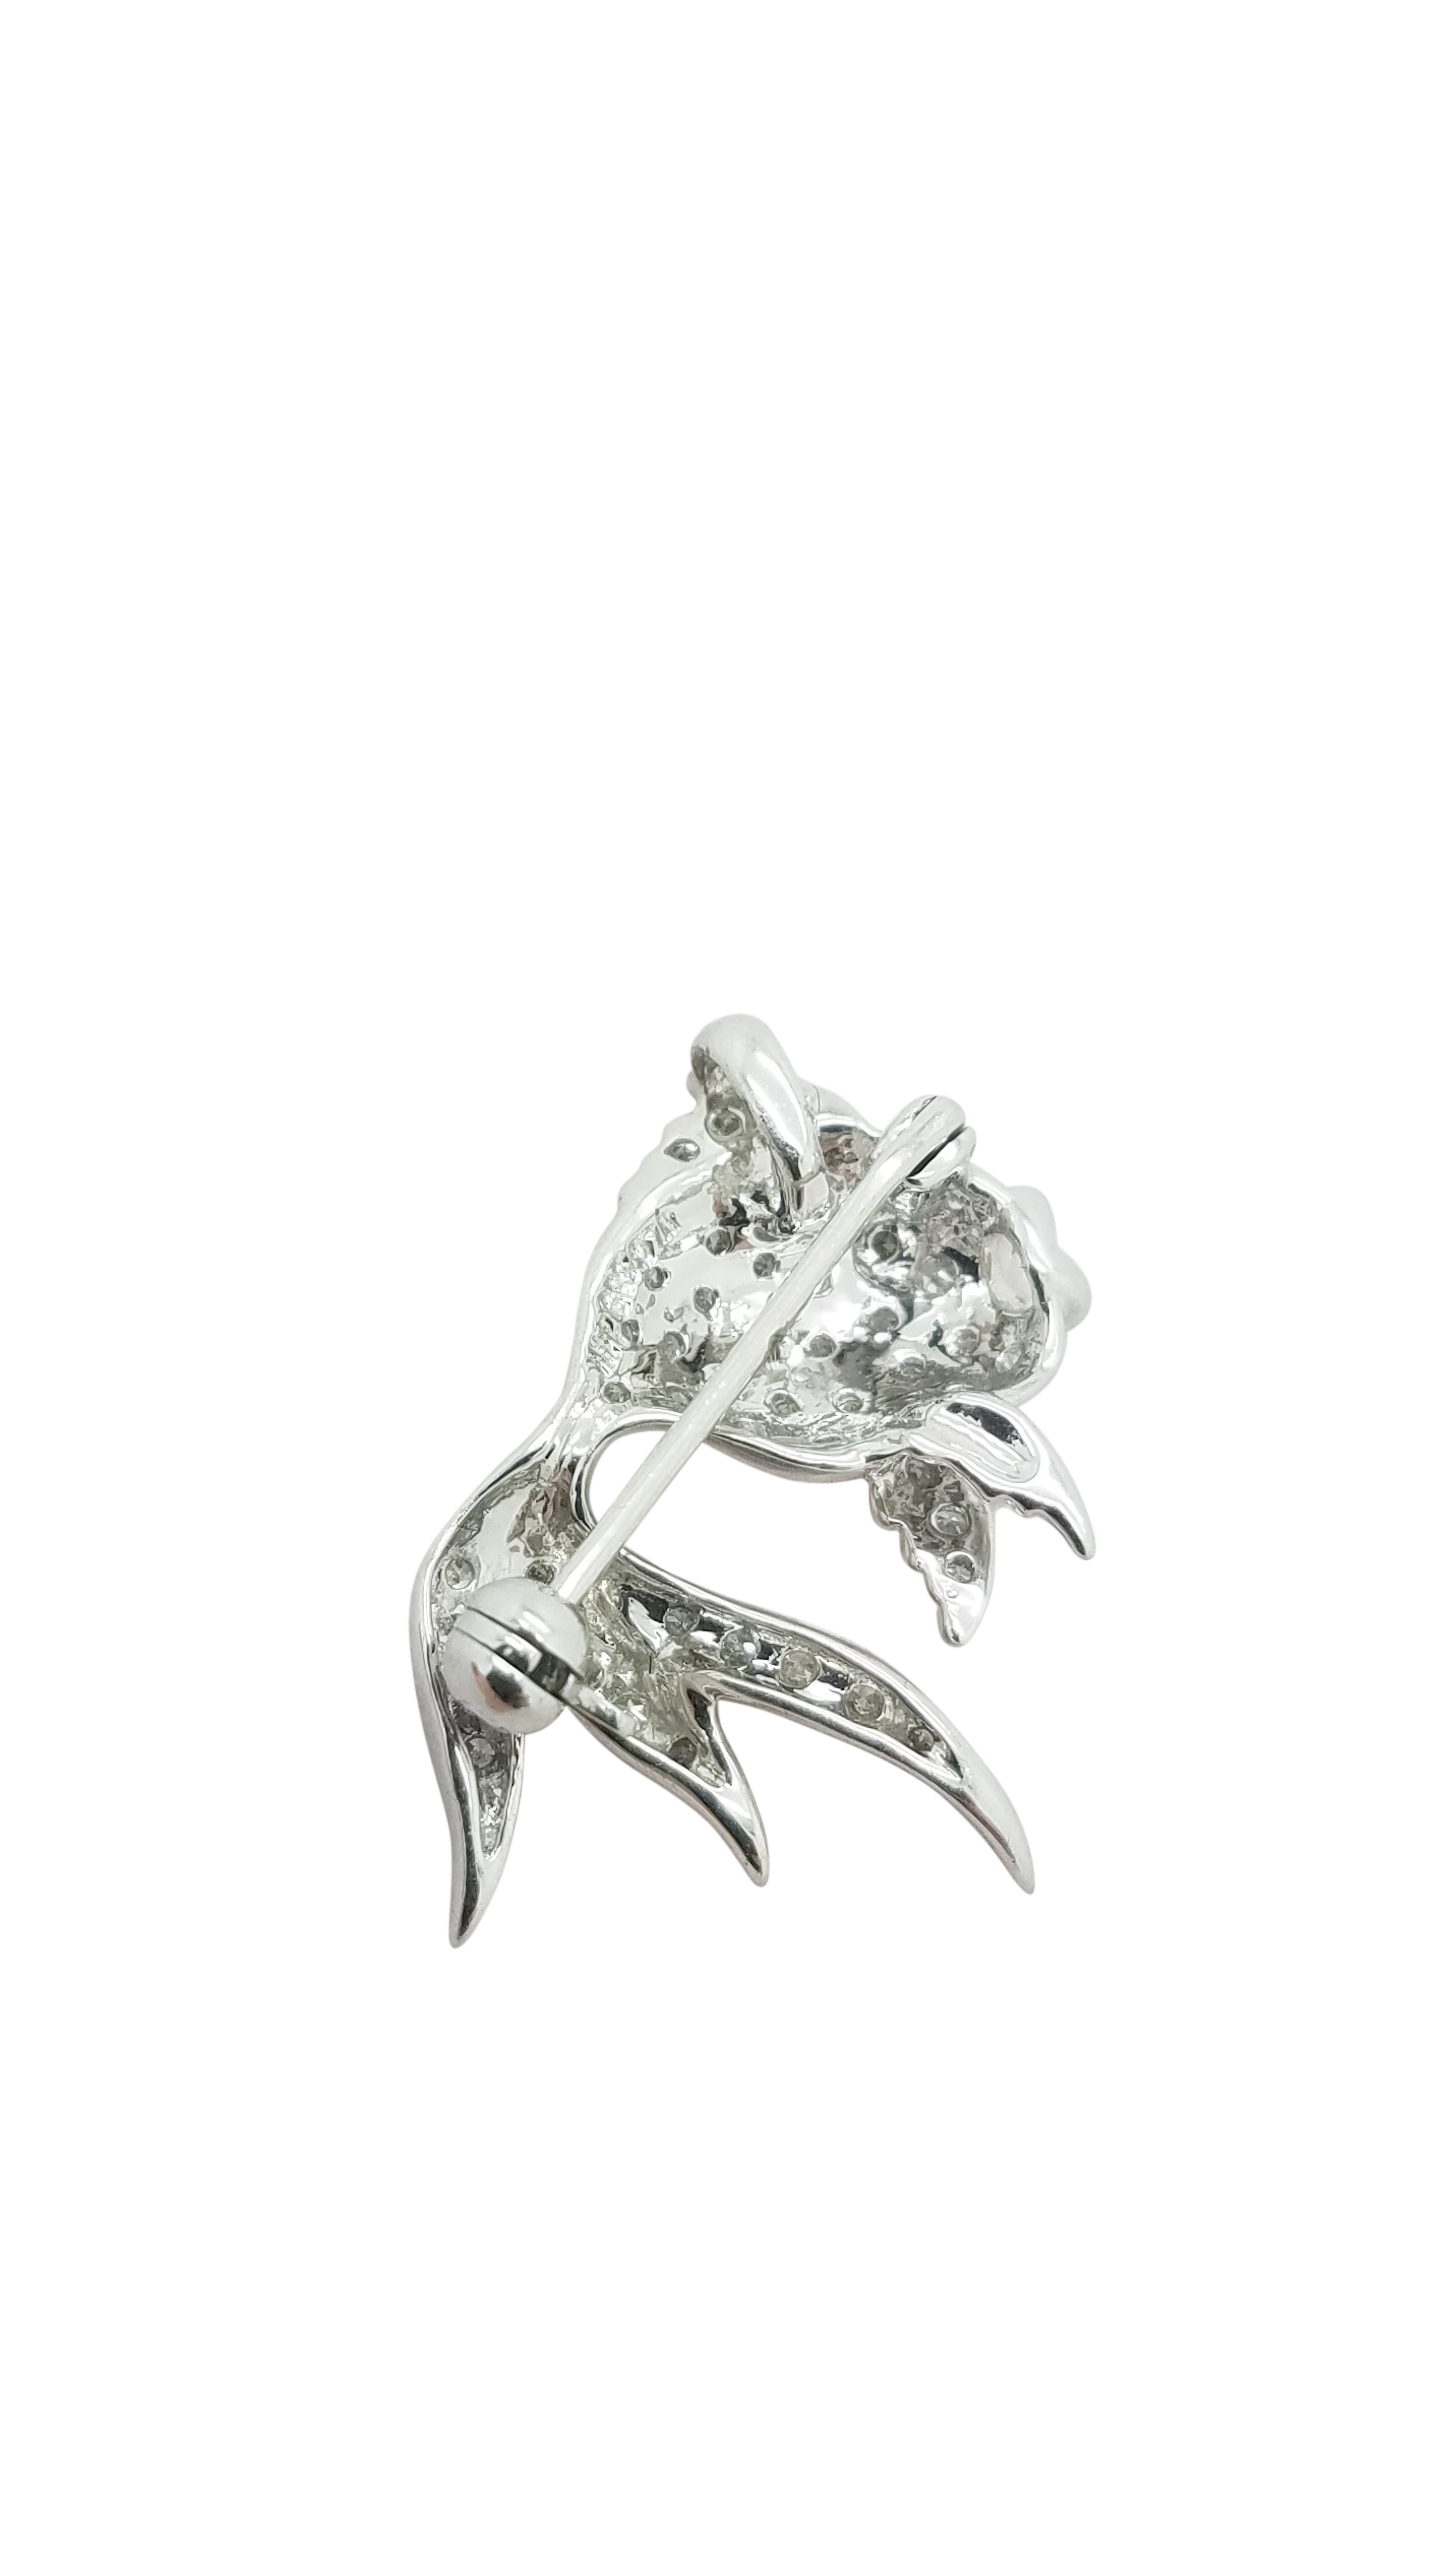 MODERN 0 35 ct DIAMOND 14K White Gold 3 G GOLDFISH PIN BROOCH